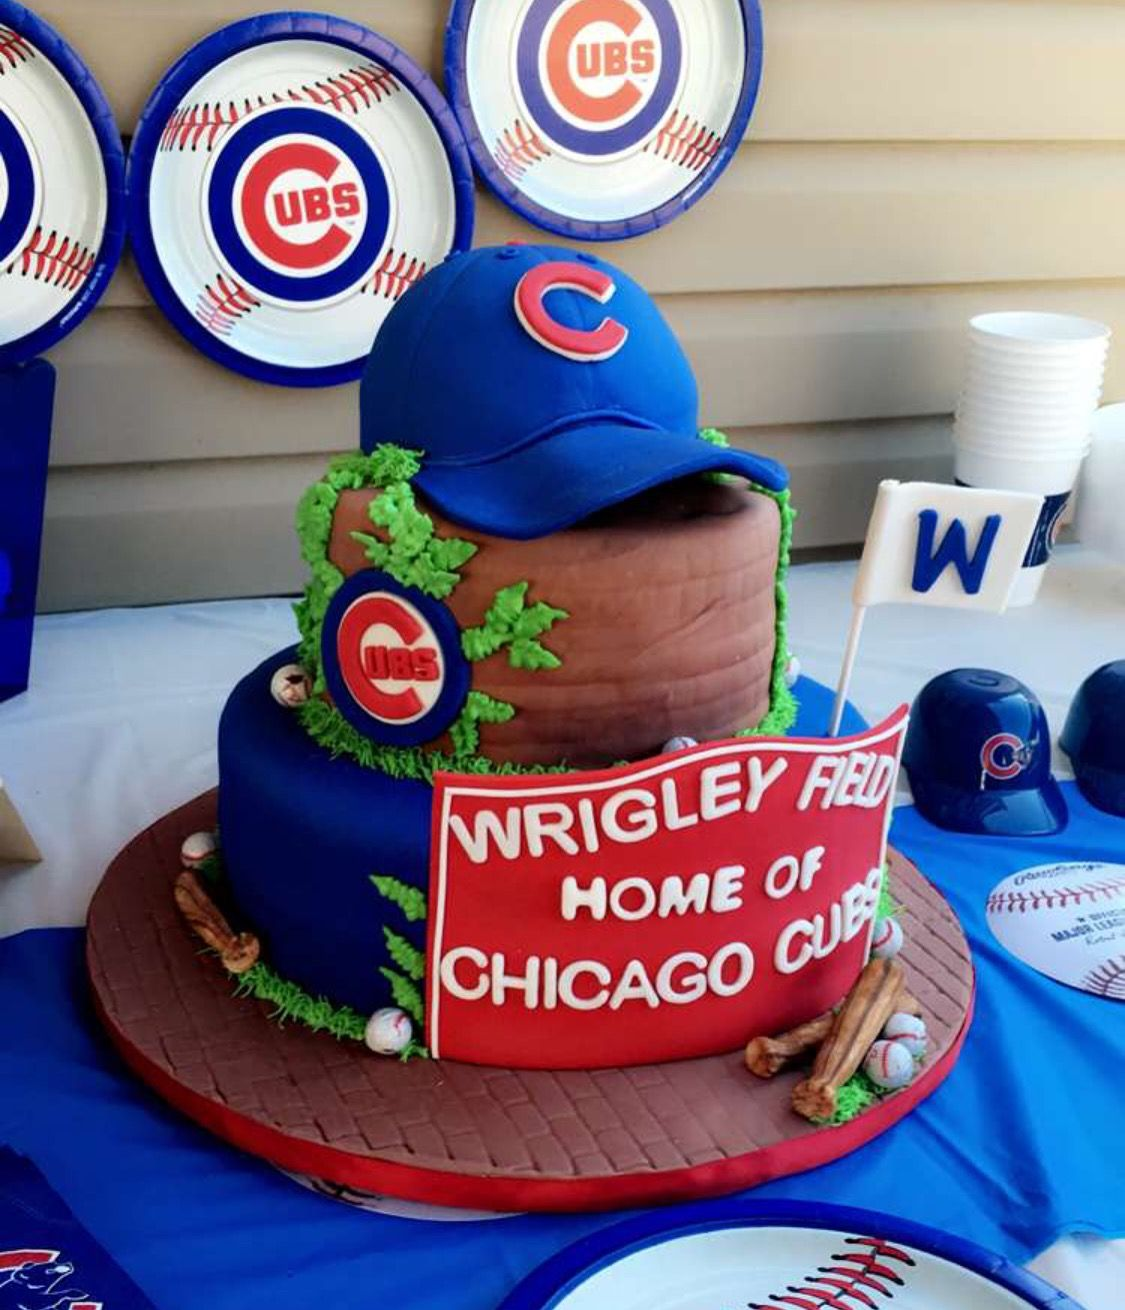 Chicago Cubs Cake, Chicago Cubs And Chicago